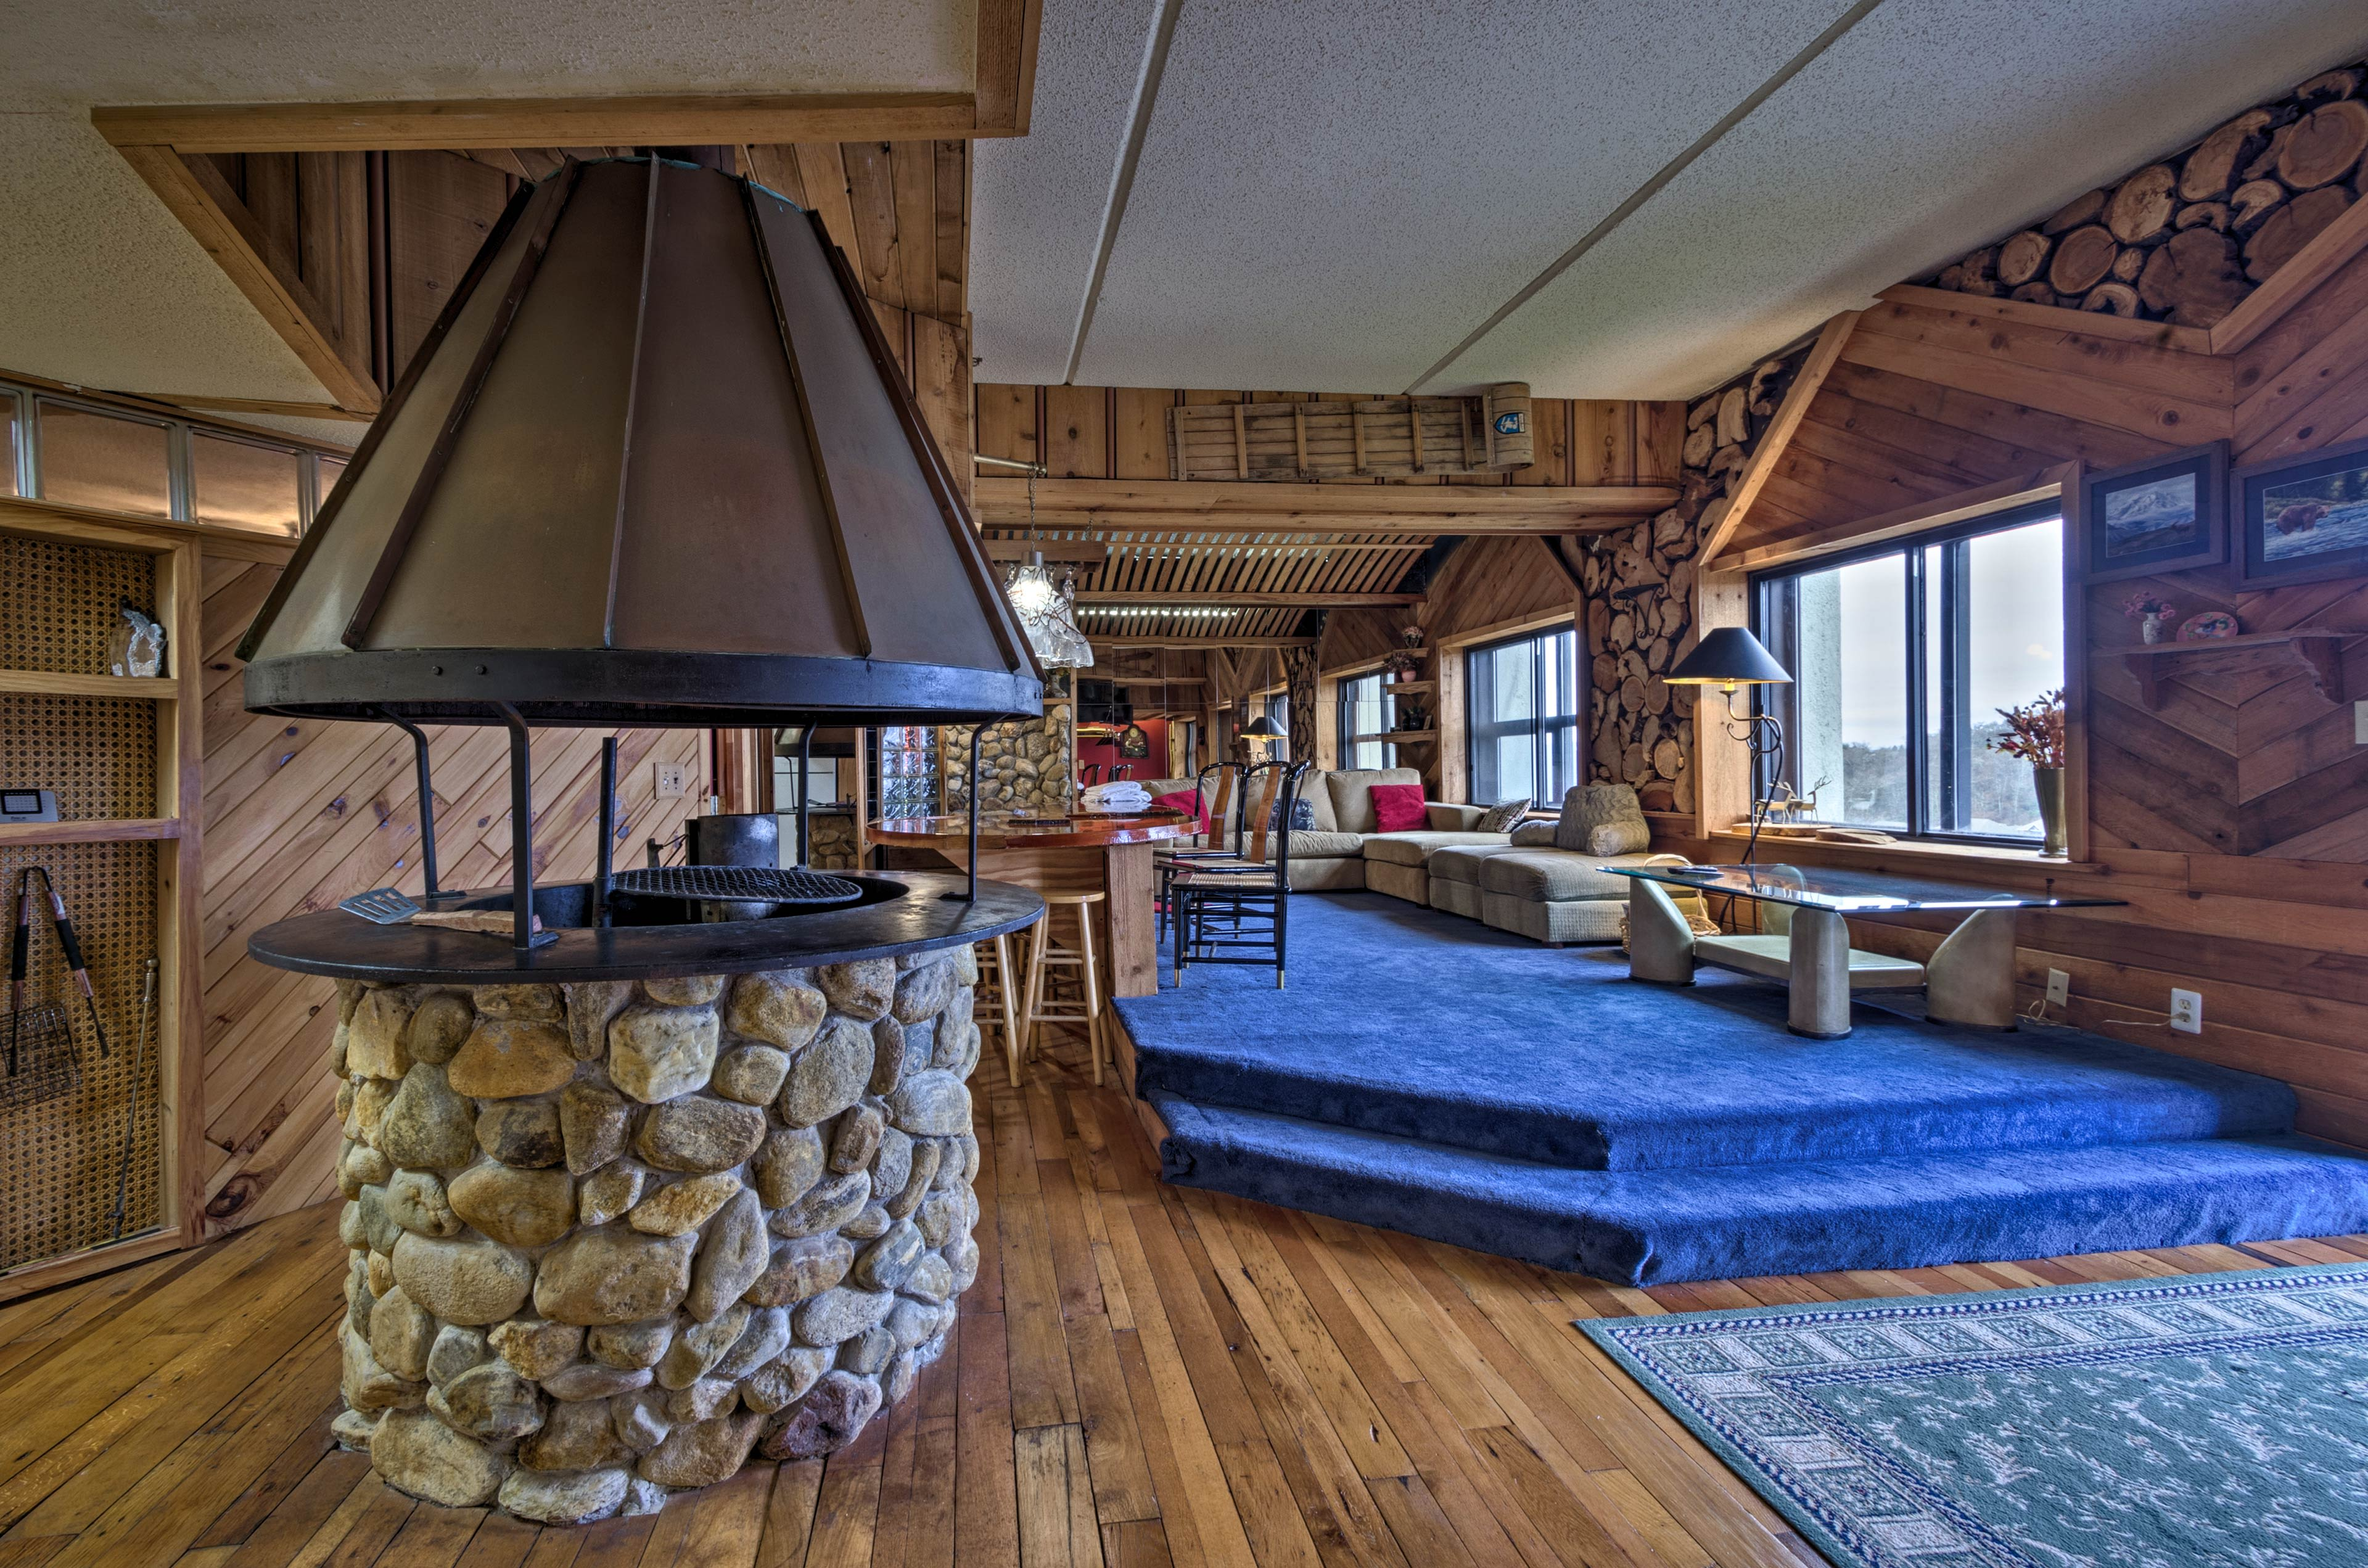 Natural wood walls and flooring bring a rustic feel to the cozy space.